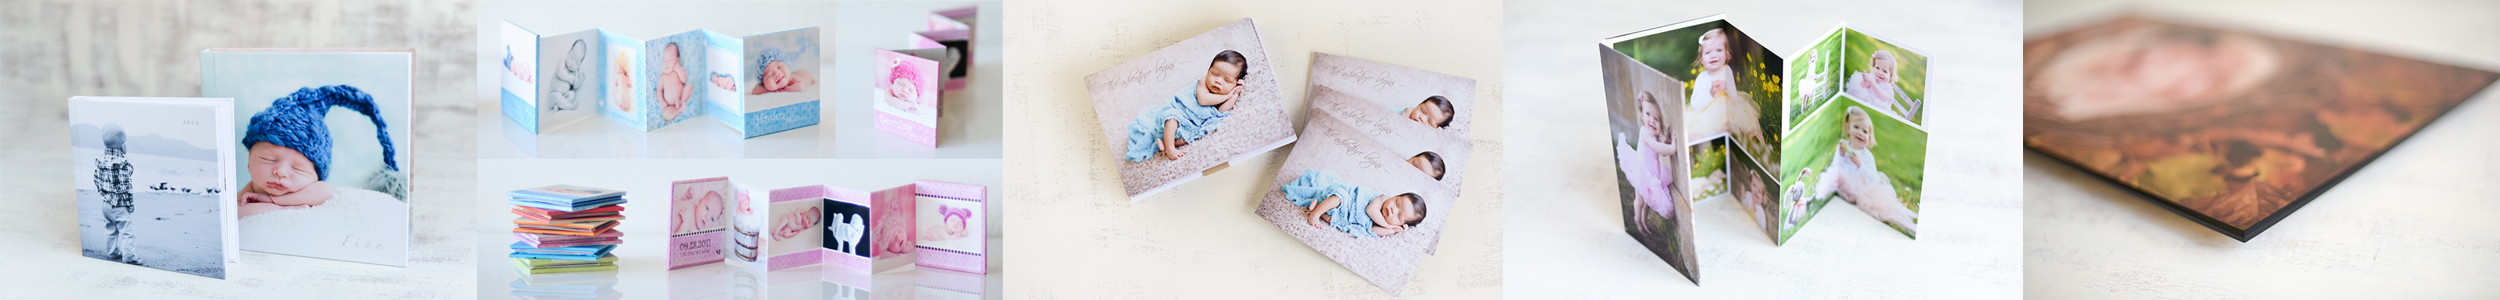 Sarka Photography albums books prints and gift products for baby photography